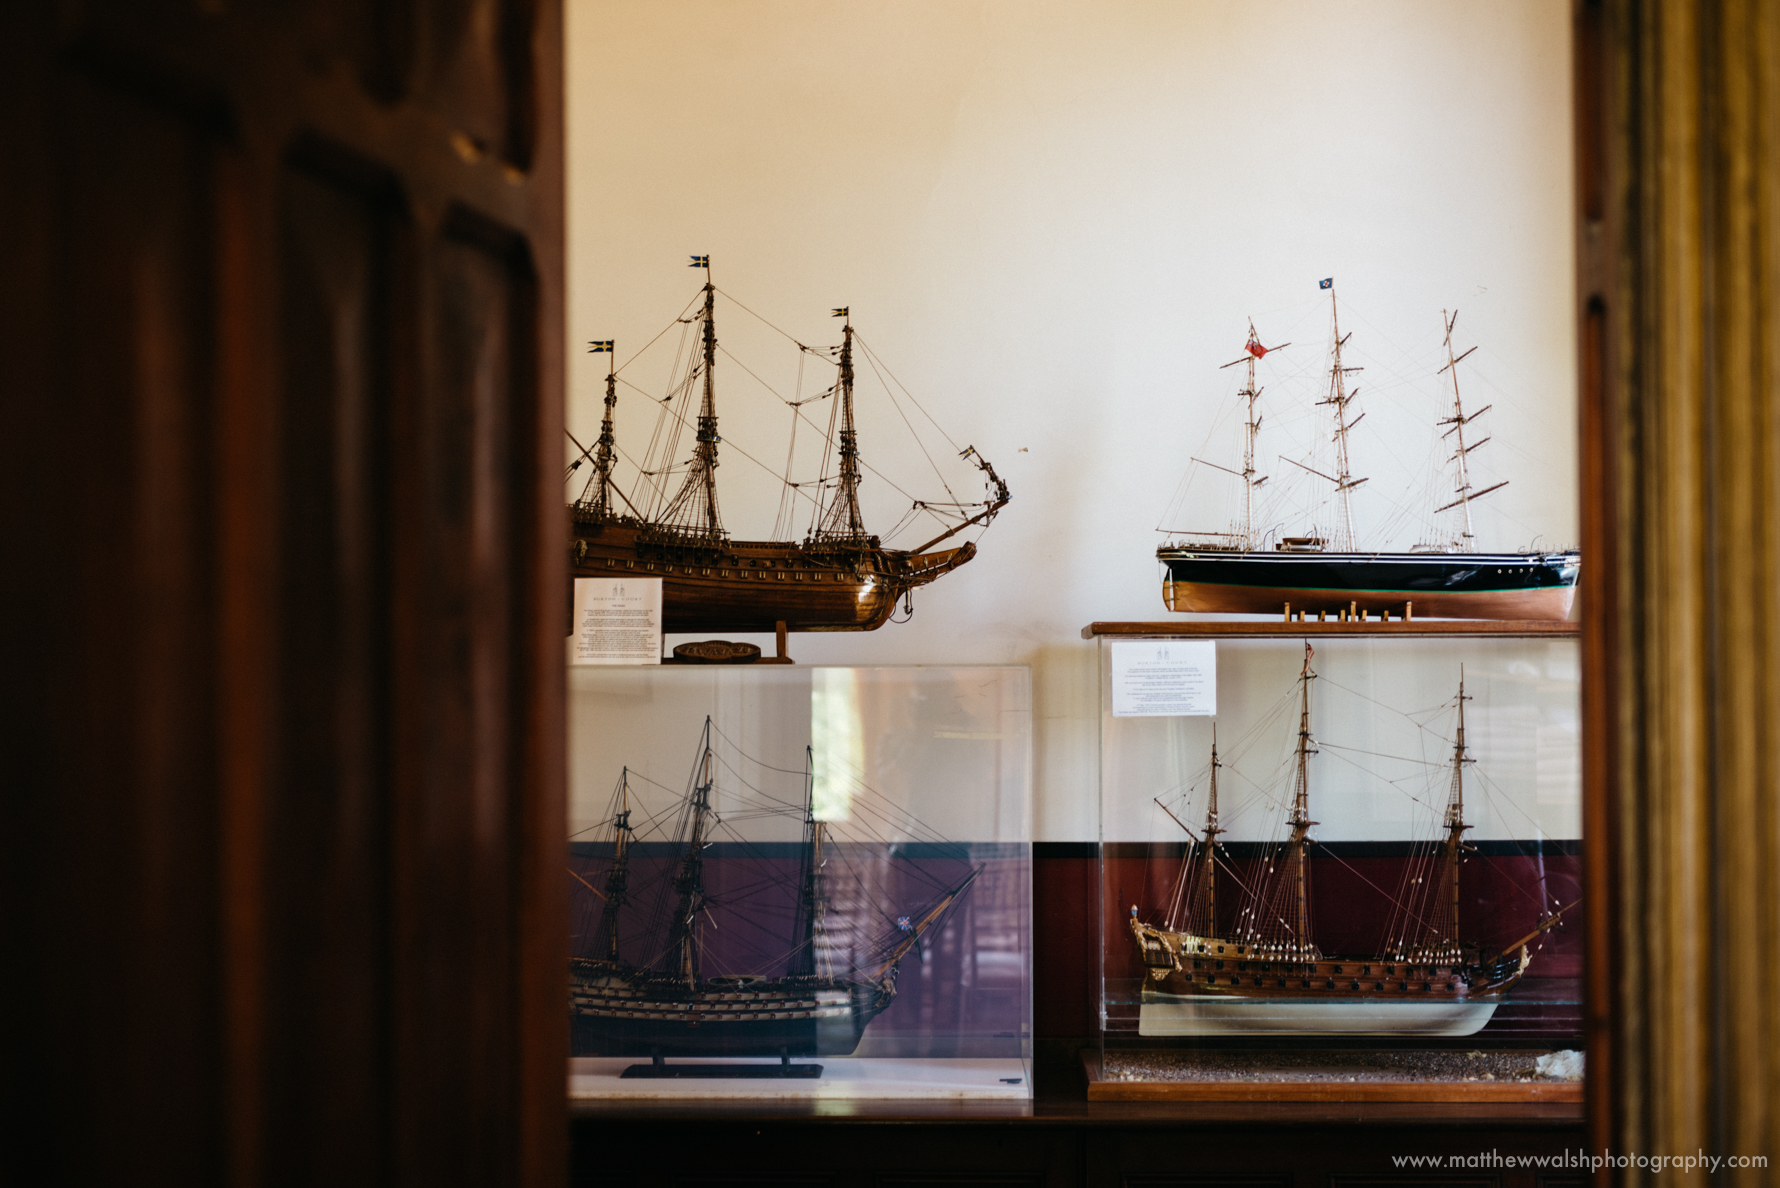 Model ships, details of the historic house